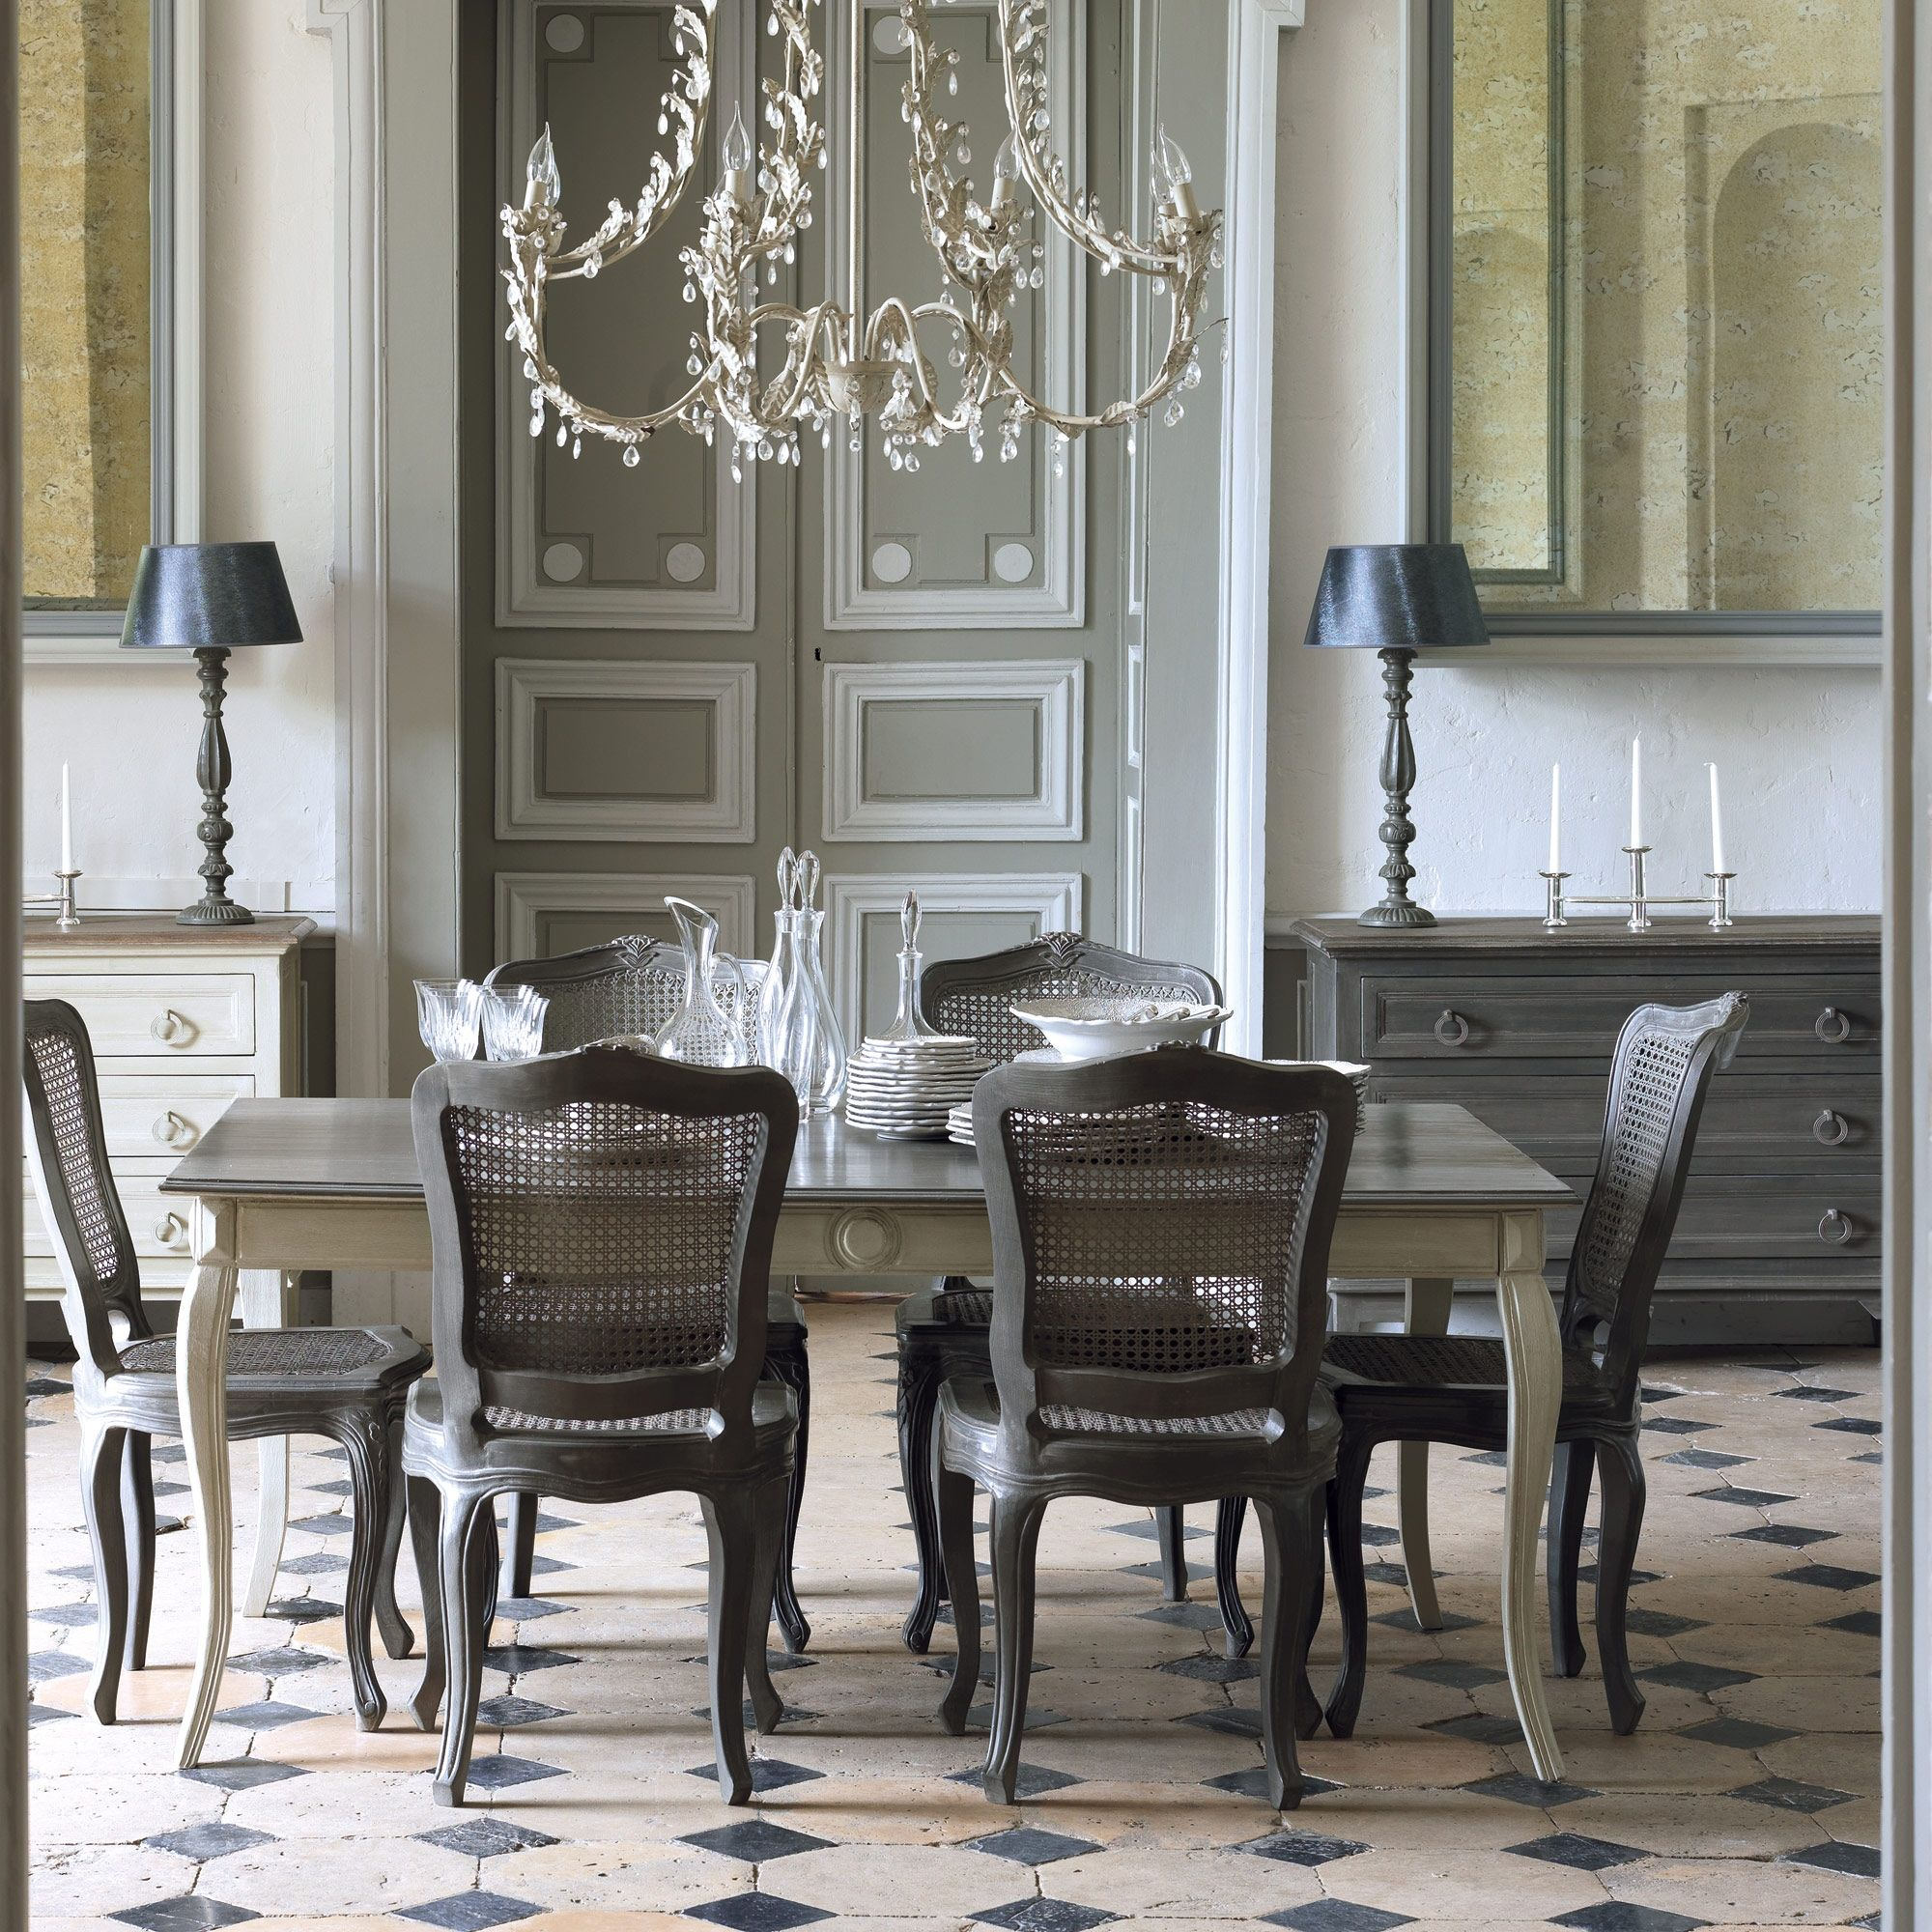 Manon dining table love the table and chairs floor grey u acid